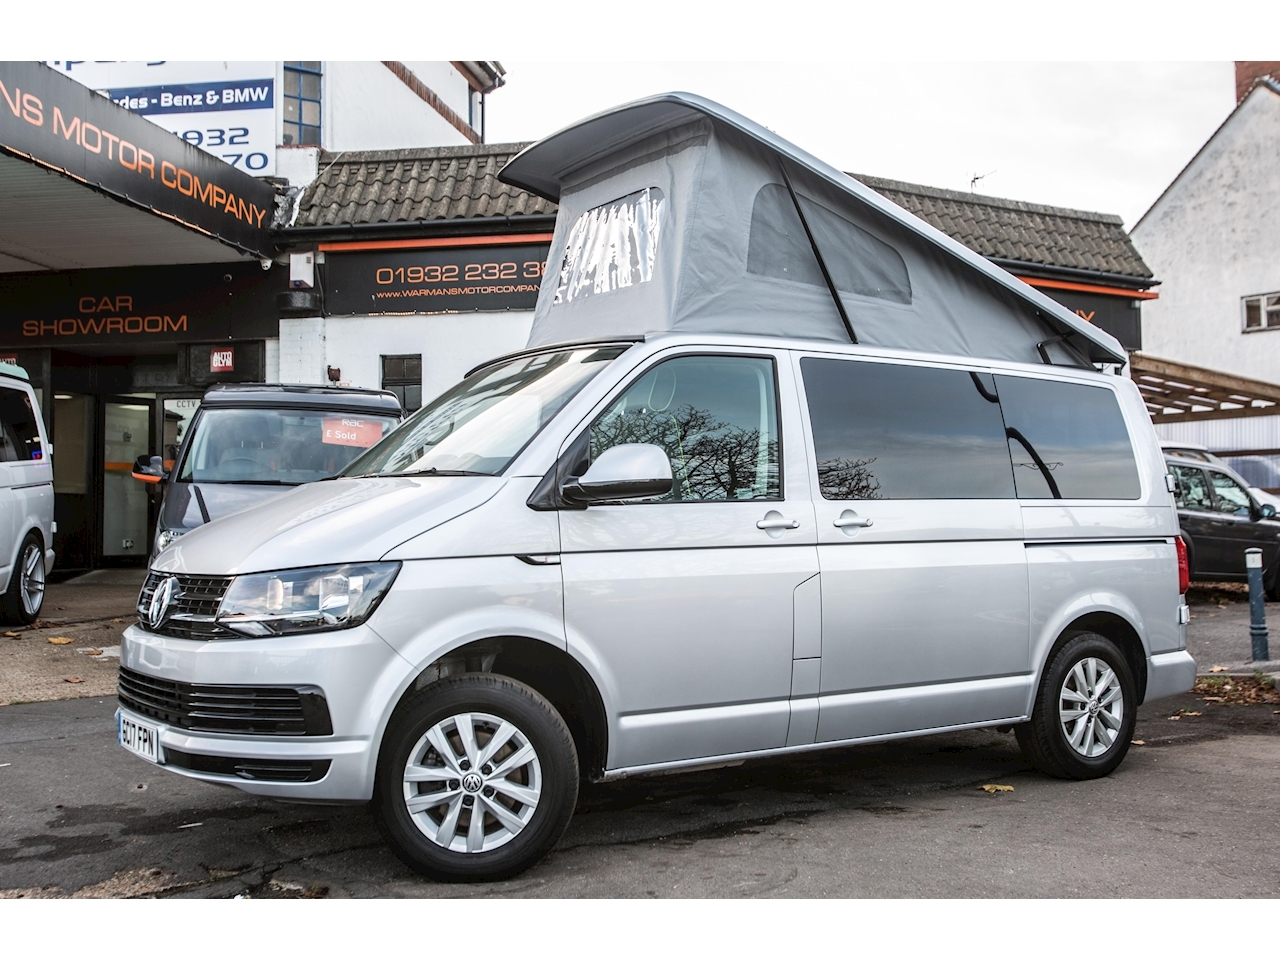 Transporter Campervan T28 Tdi 4 Berth Campervan 2.0 5dr Van Conversion Manual Diesel